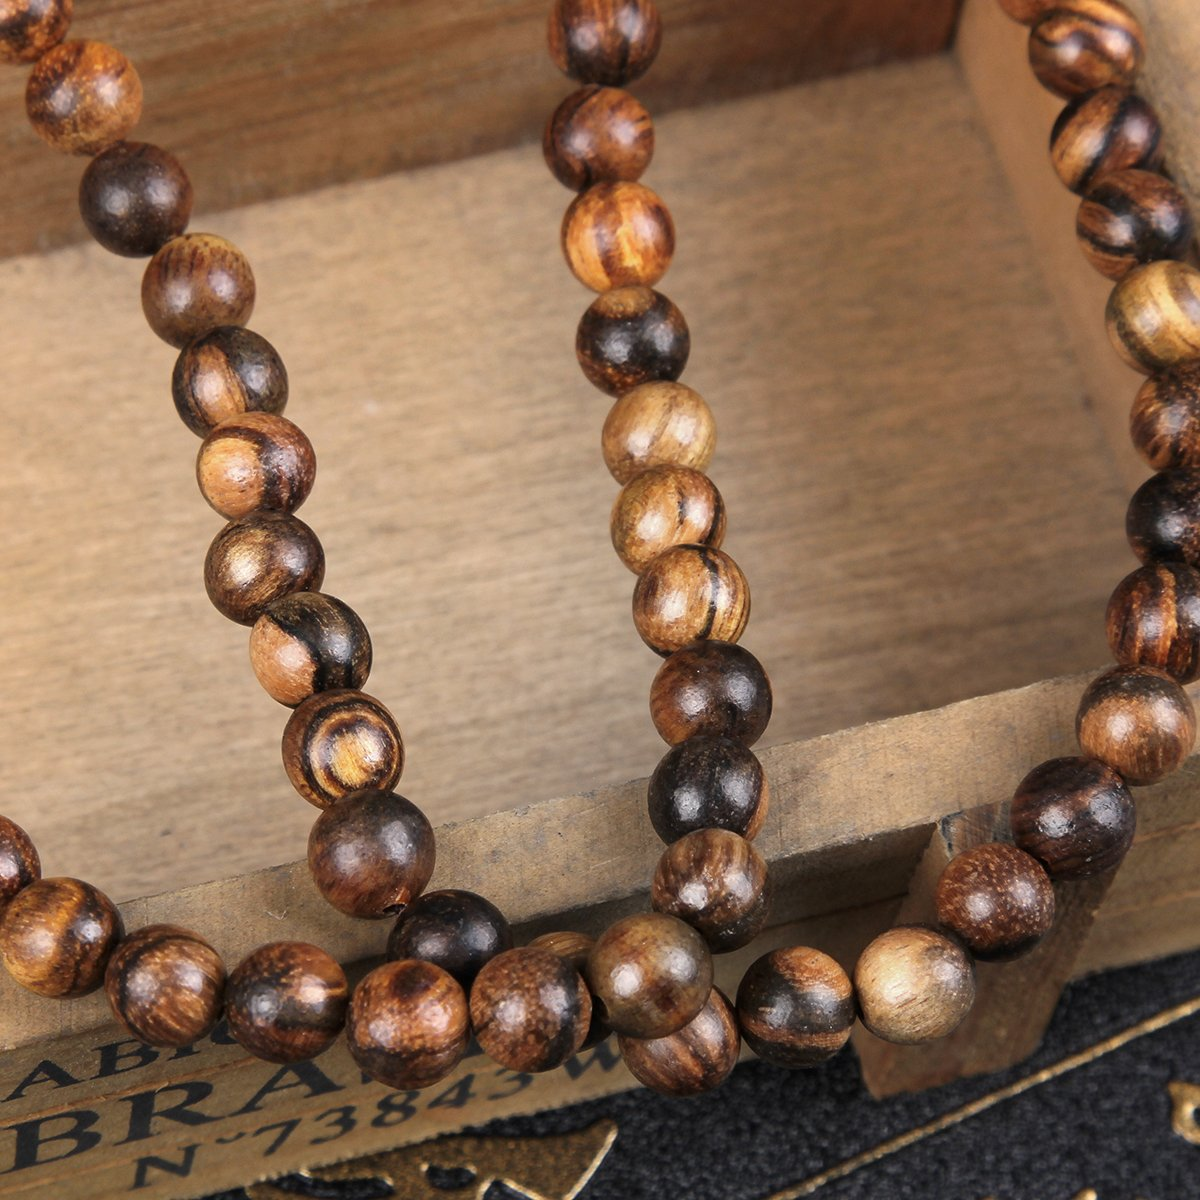 EVBEA 2PCS 6mm 8mm Buddha Bracelet Necklace Prayer Beads Rosary Wood Bracelets for Men (8mm bead) by EVBEA (Image #4)